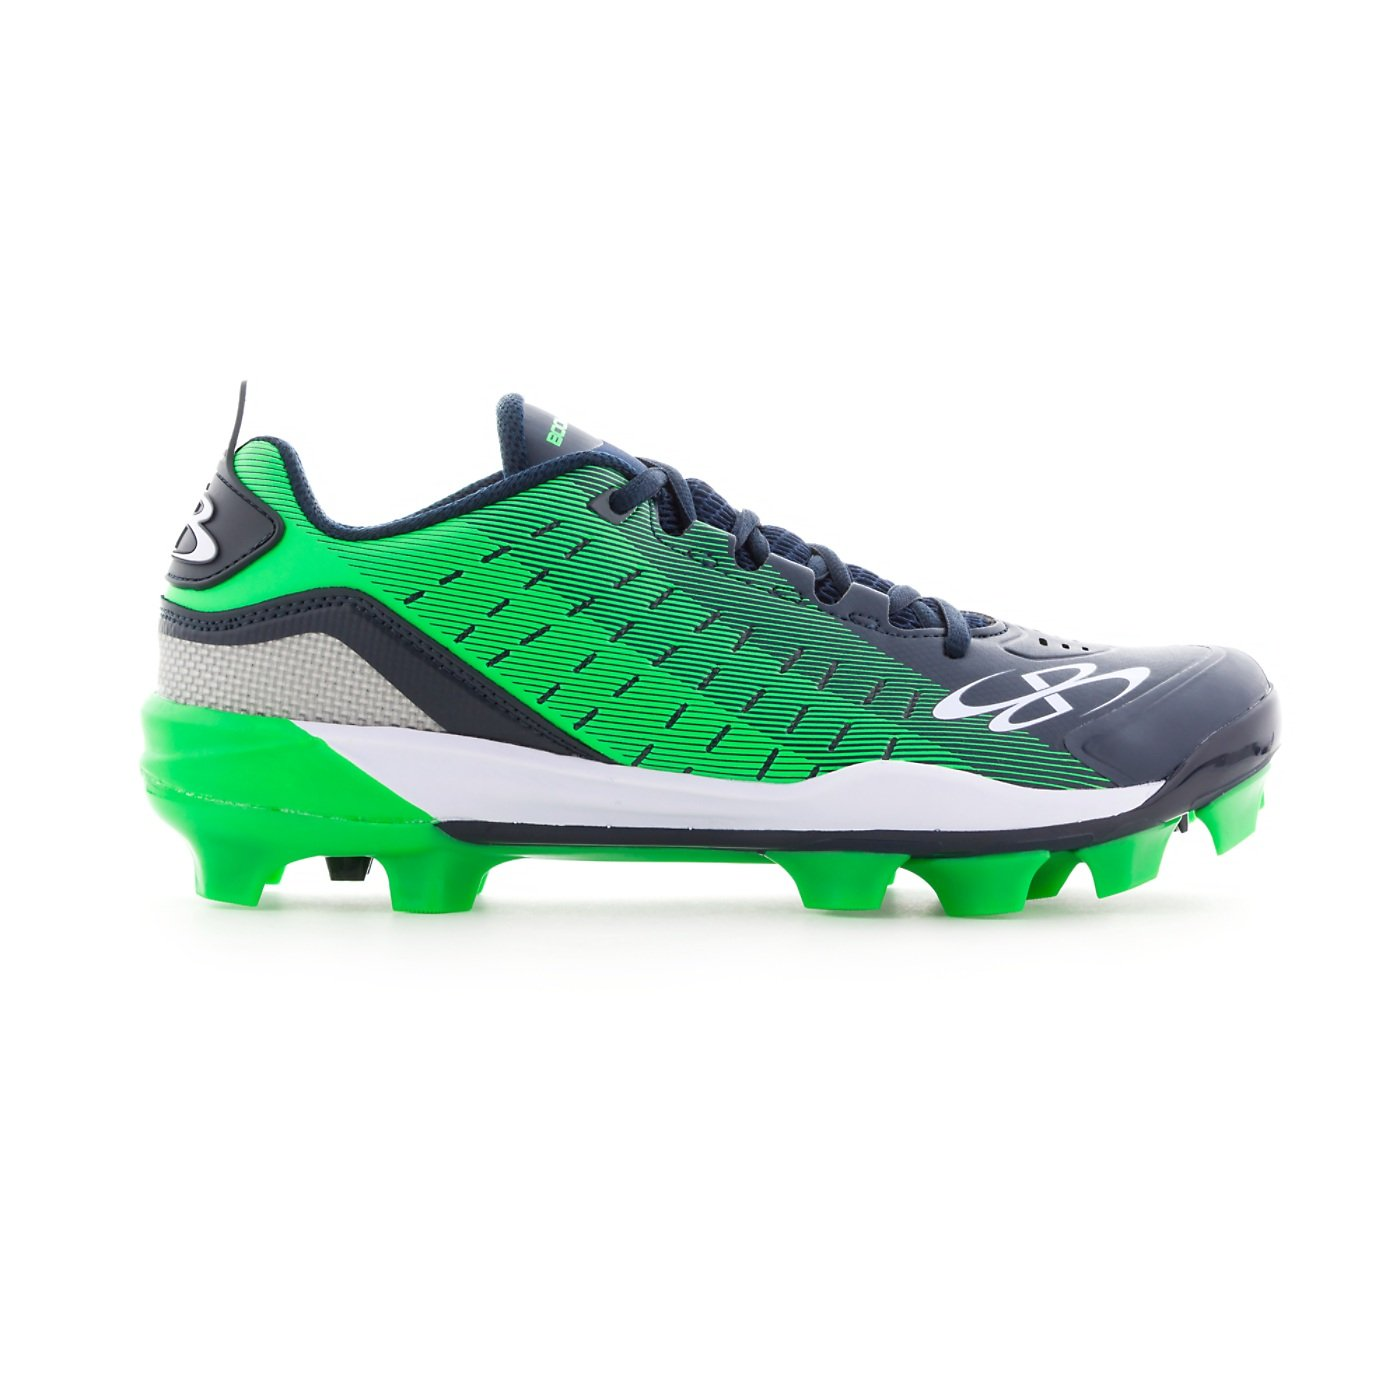 Boombah Men's Catalyst Molded Cleats - 16 Color Options - Multiple Sizes B079SZ9NXN 11|Navy/Lime Green